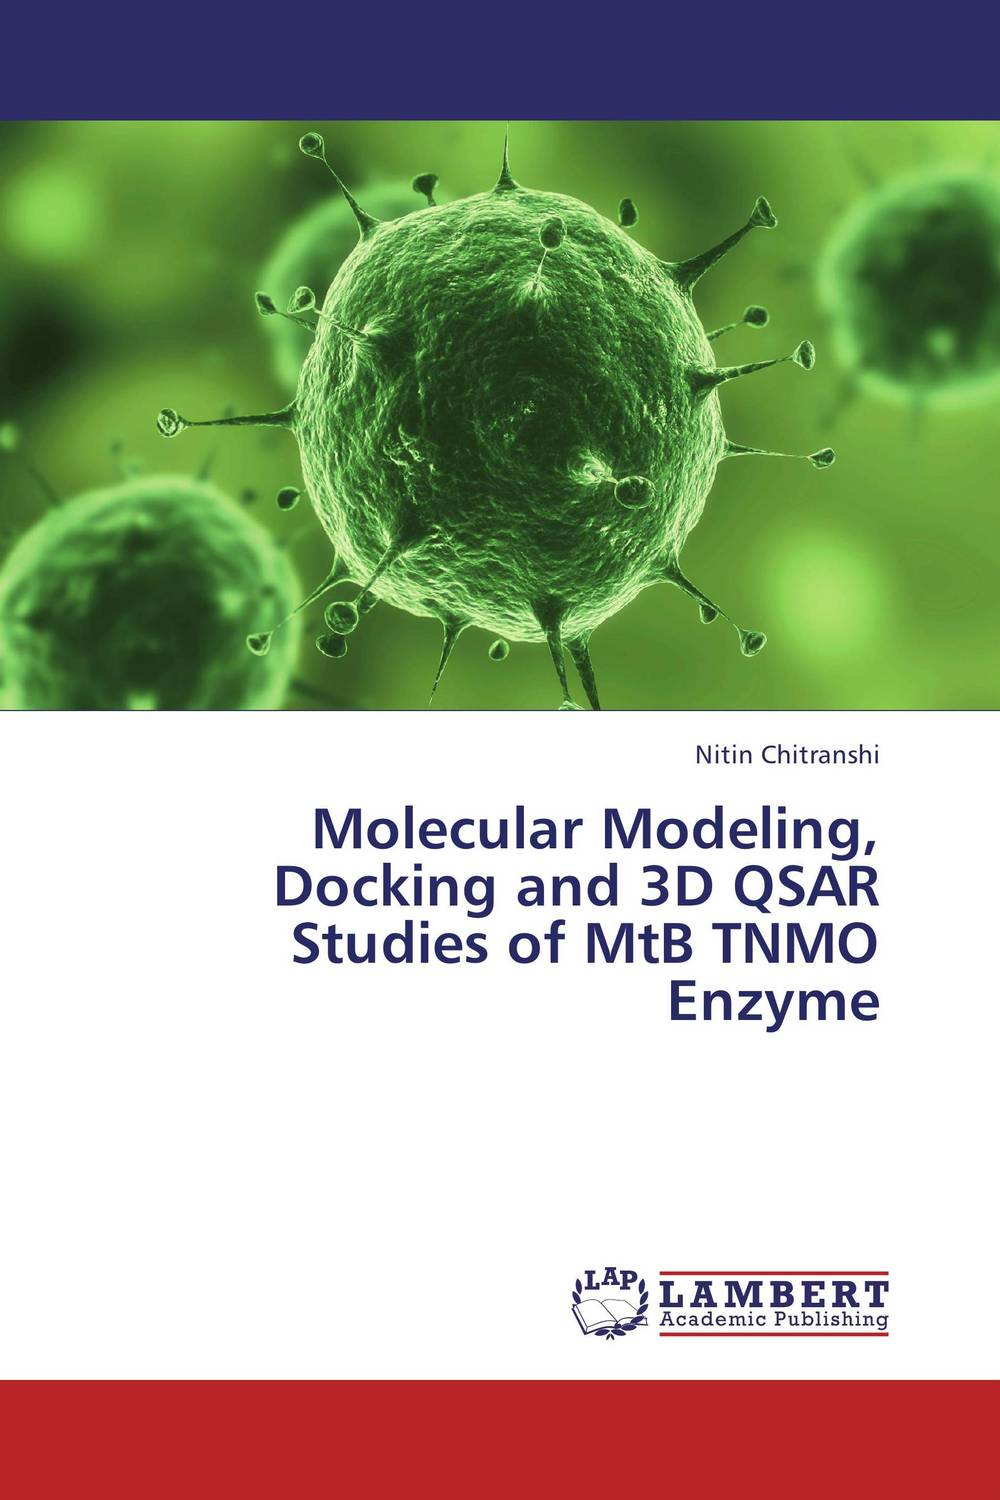 Molecular Modeling, Docking and 3D QSAR Studies of MtB TNMO Enzyme nitin chitranshi molecular modeling docking and 3d qsar studies of mtb tnmo enzyme